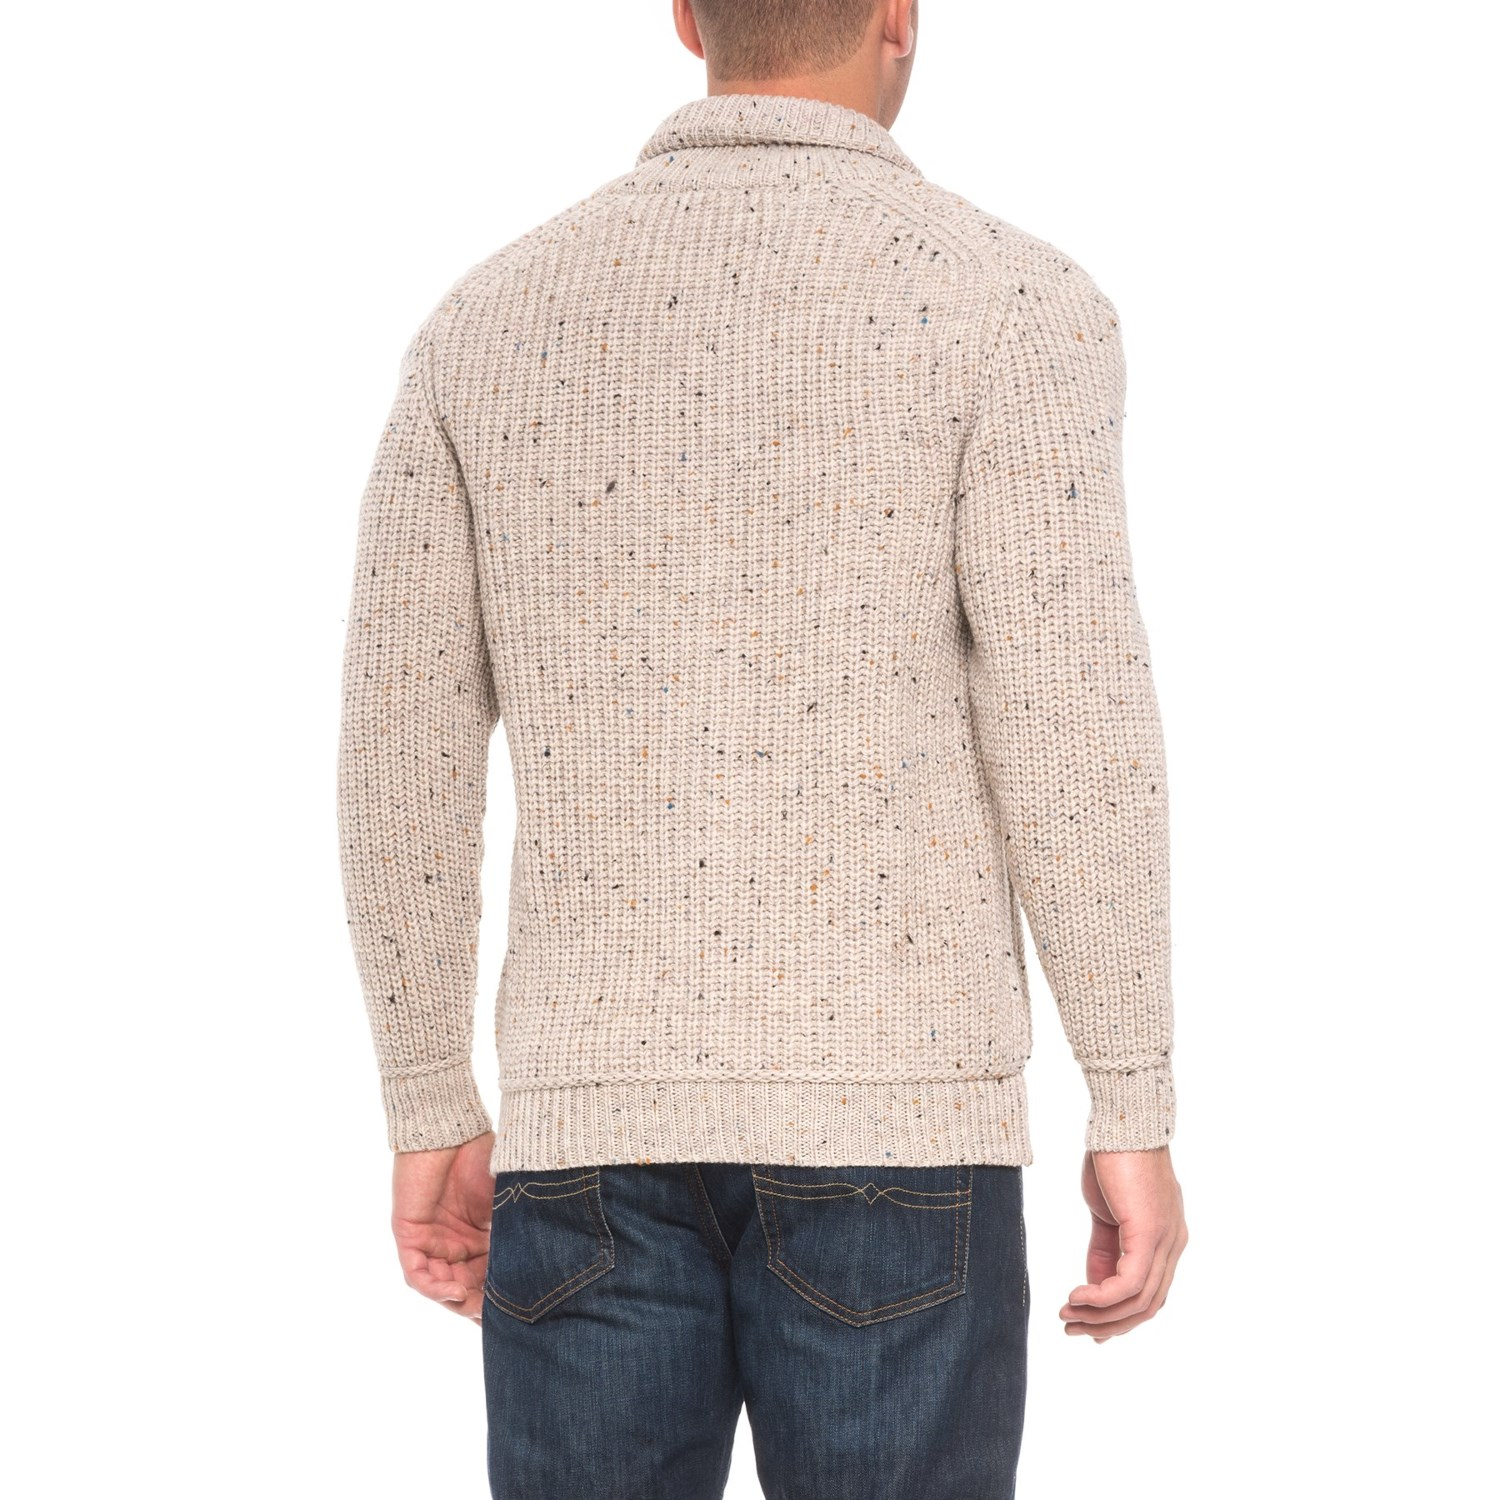 Inis Crafts Ribbed Shawl Cardigan Sweater (For Men) - Save 42%